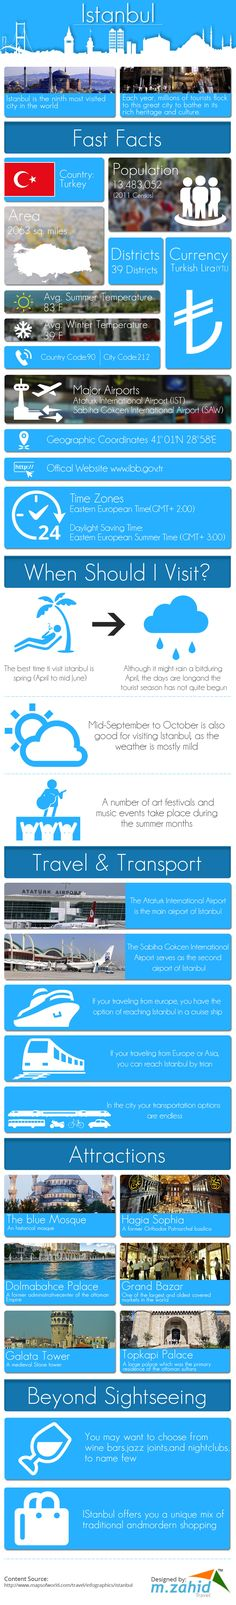 Most Visited City Istanbul – #Istanbul #Travel Infographic